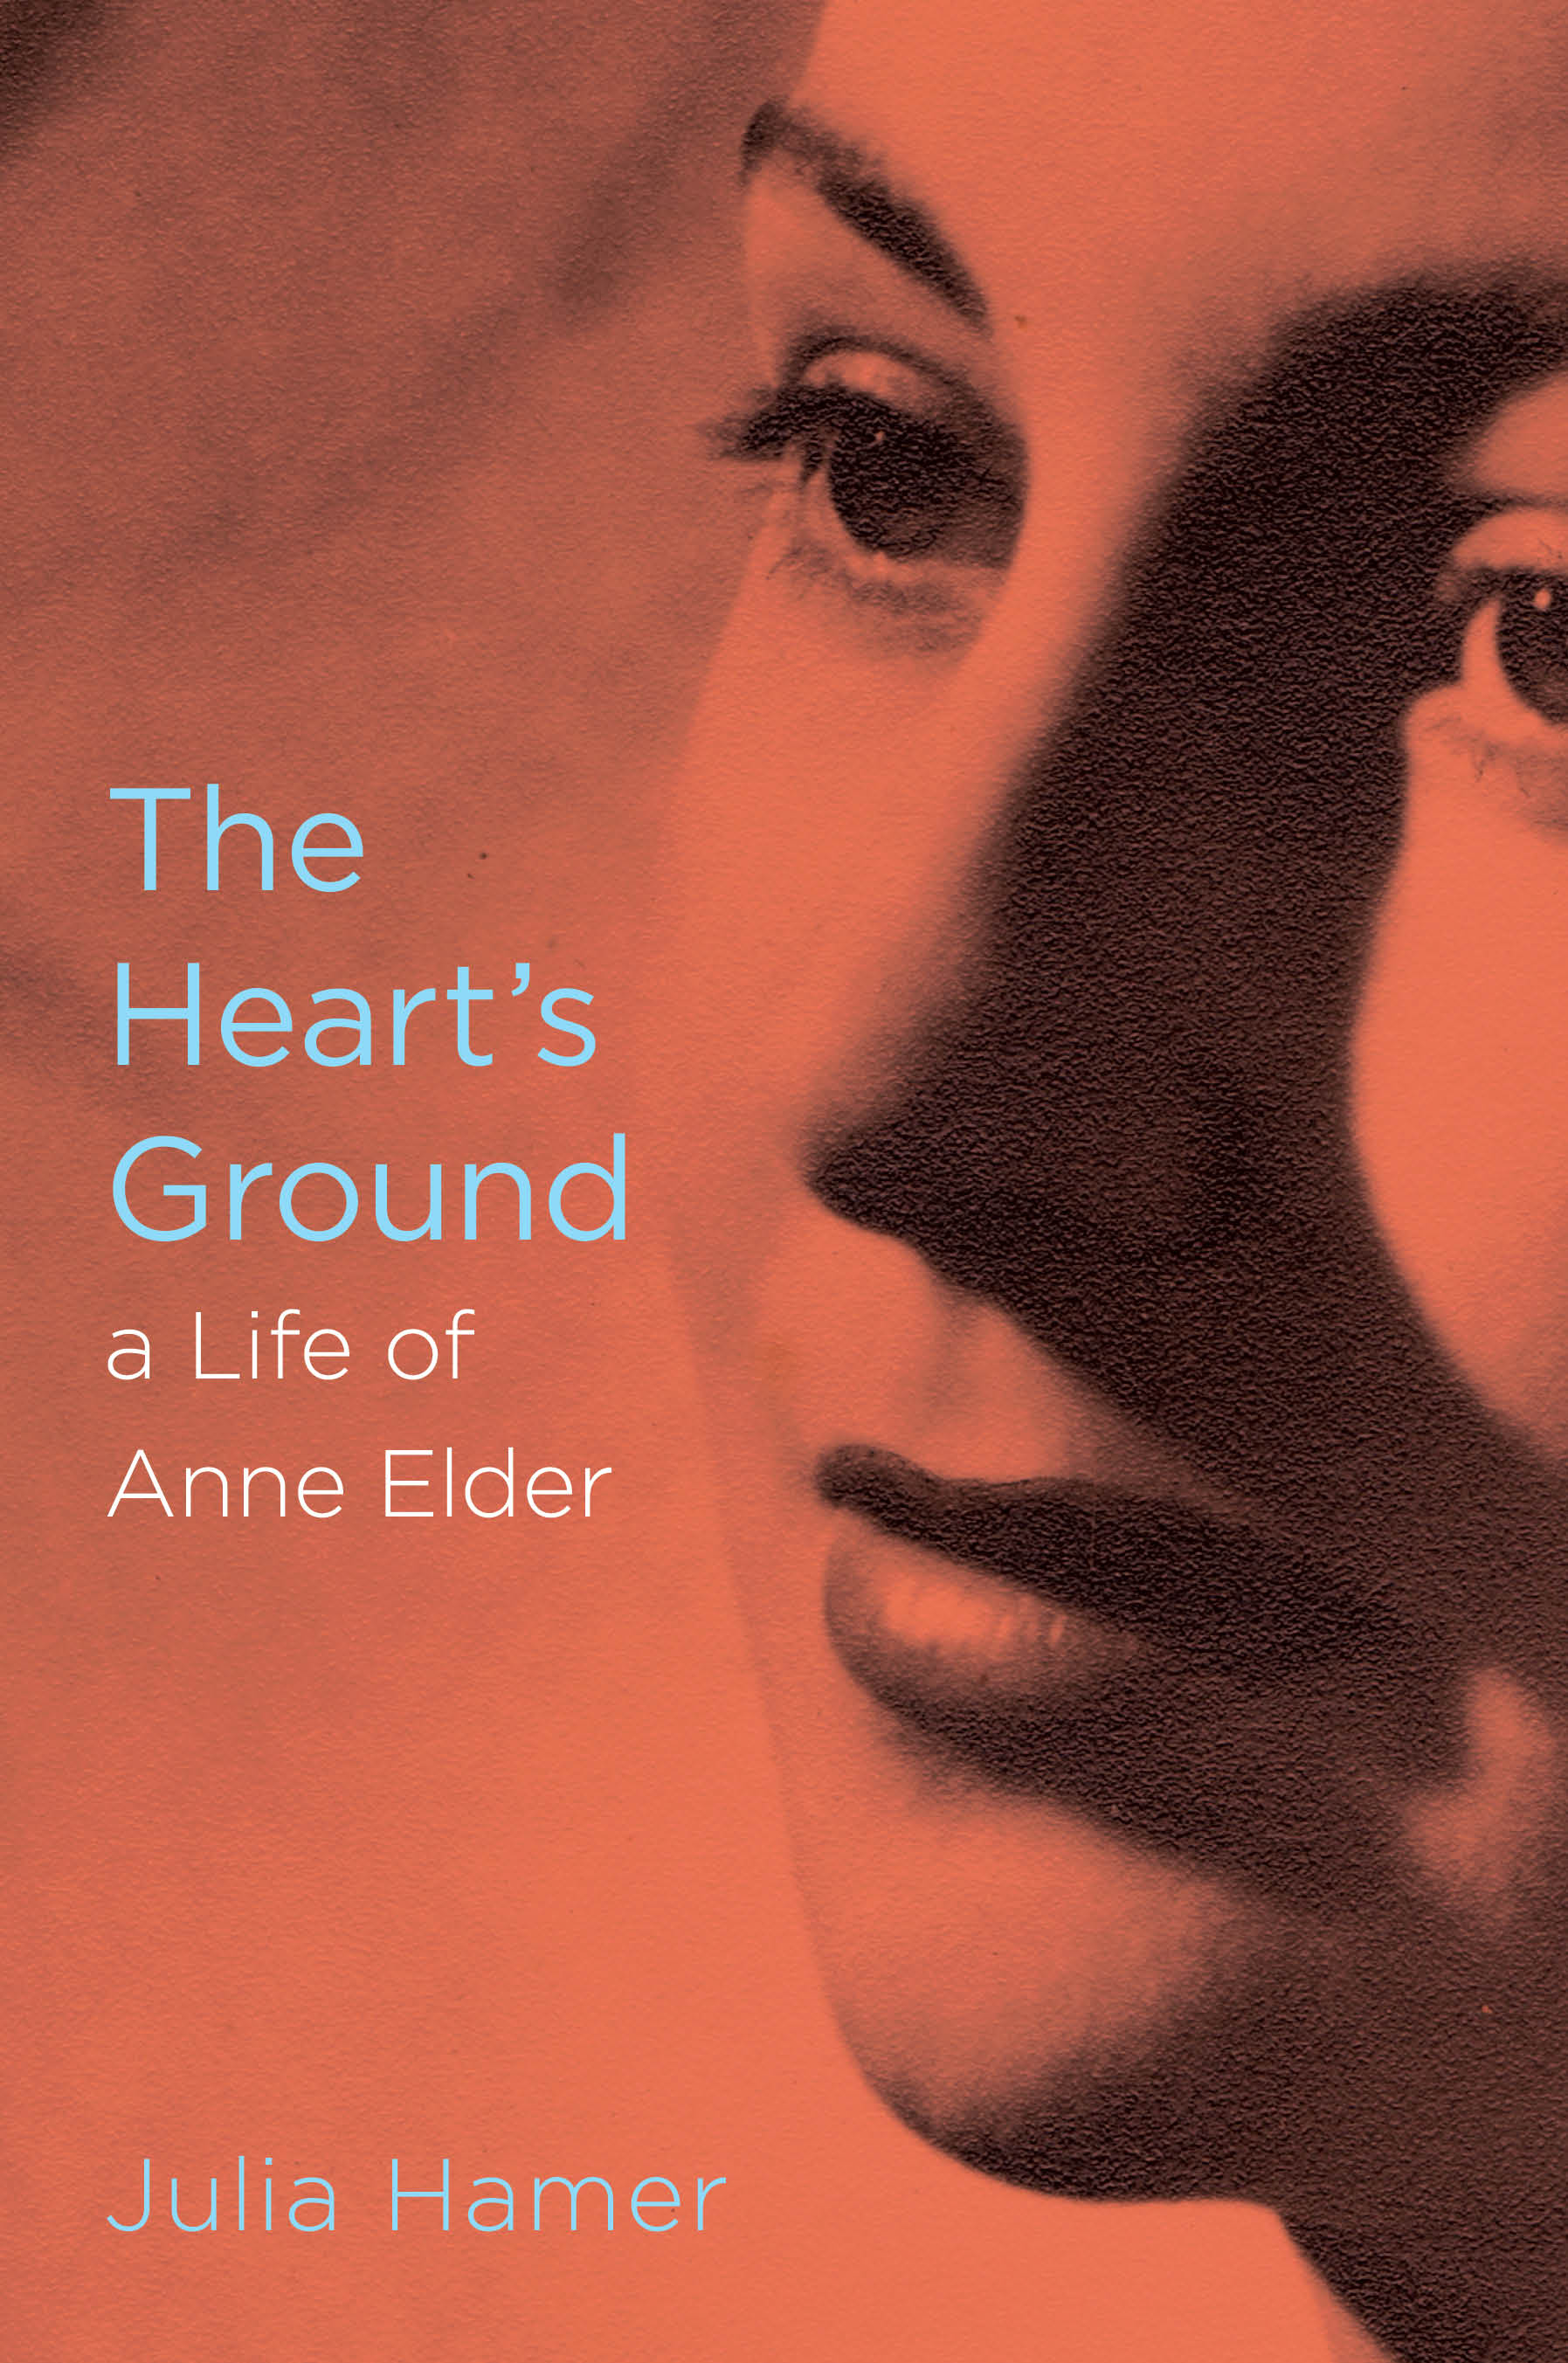 Australian Poetry Announces the 2018 Anne Elder Award Call-Out